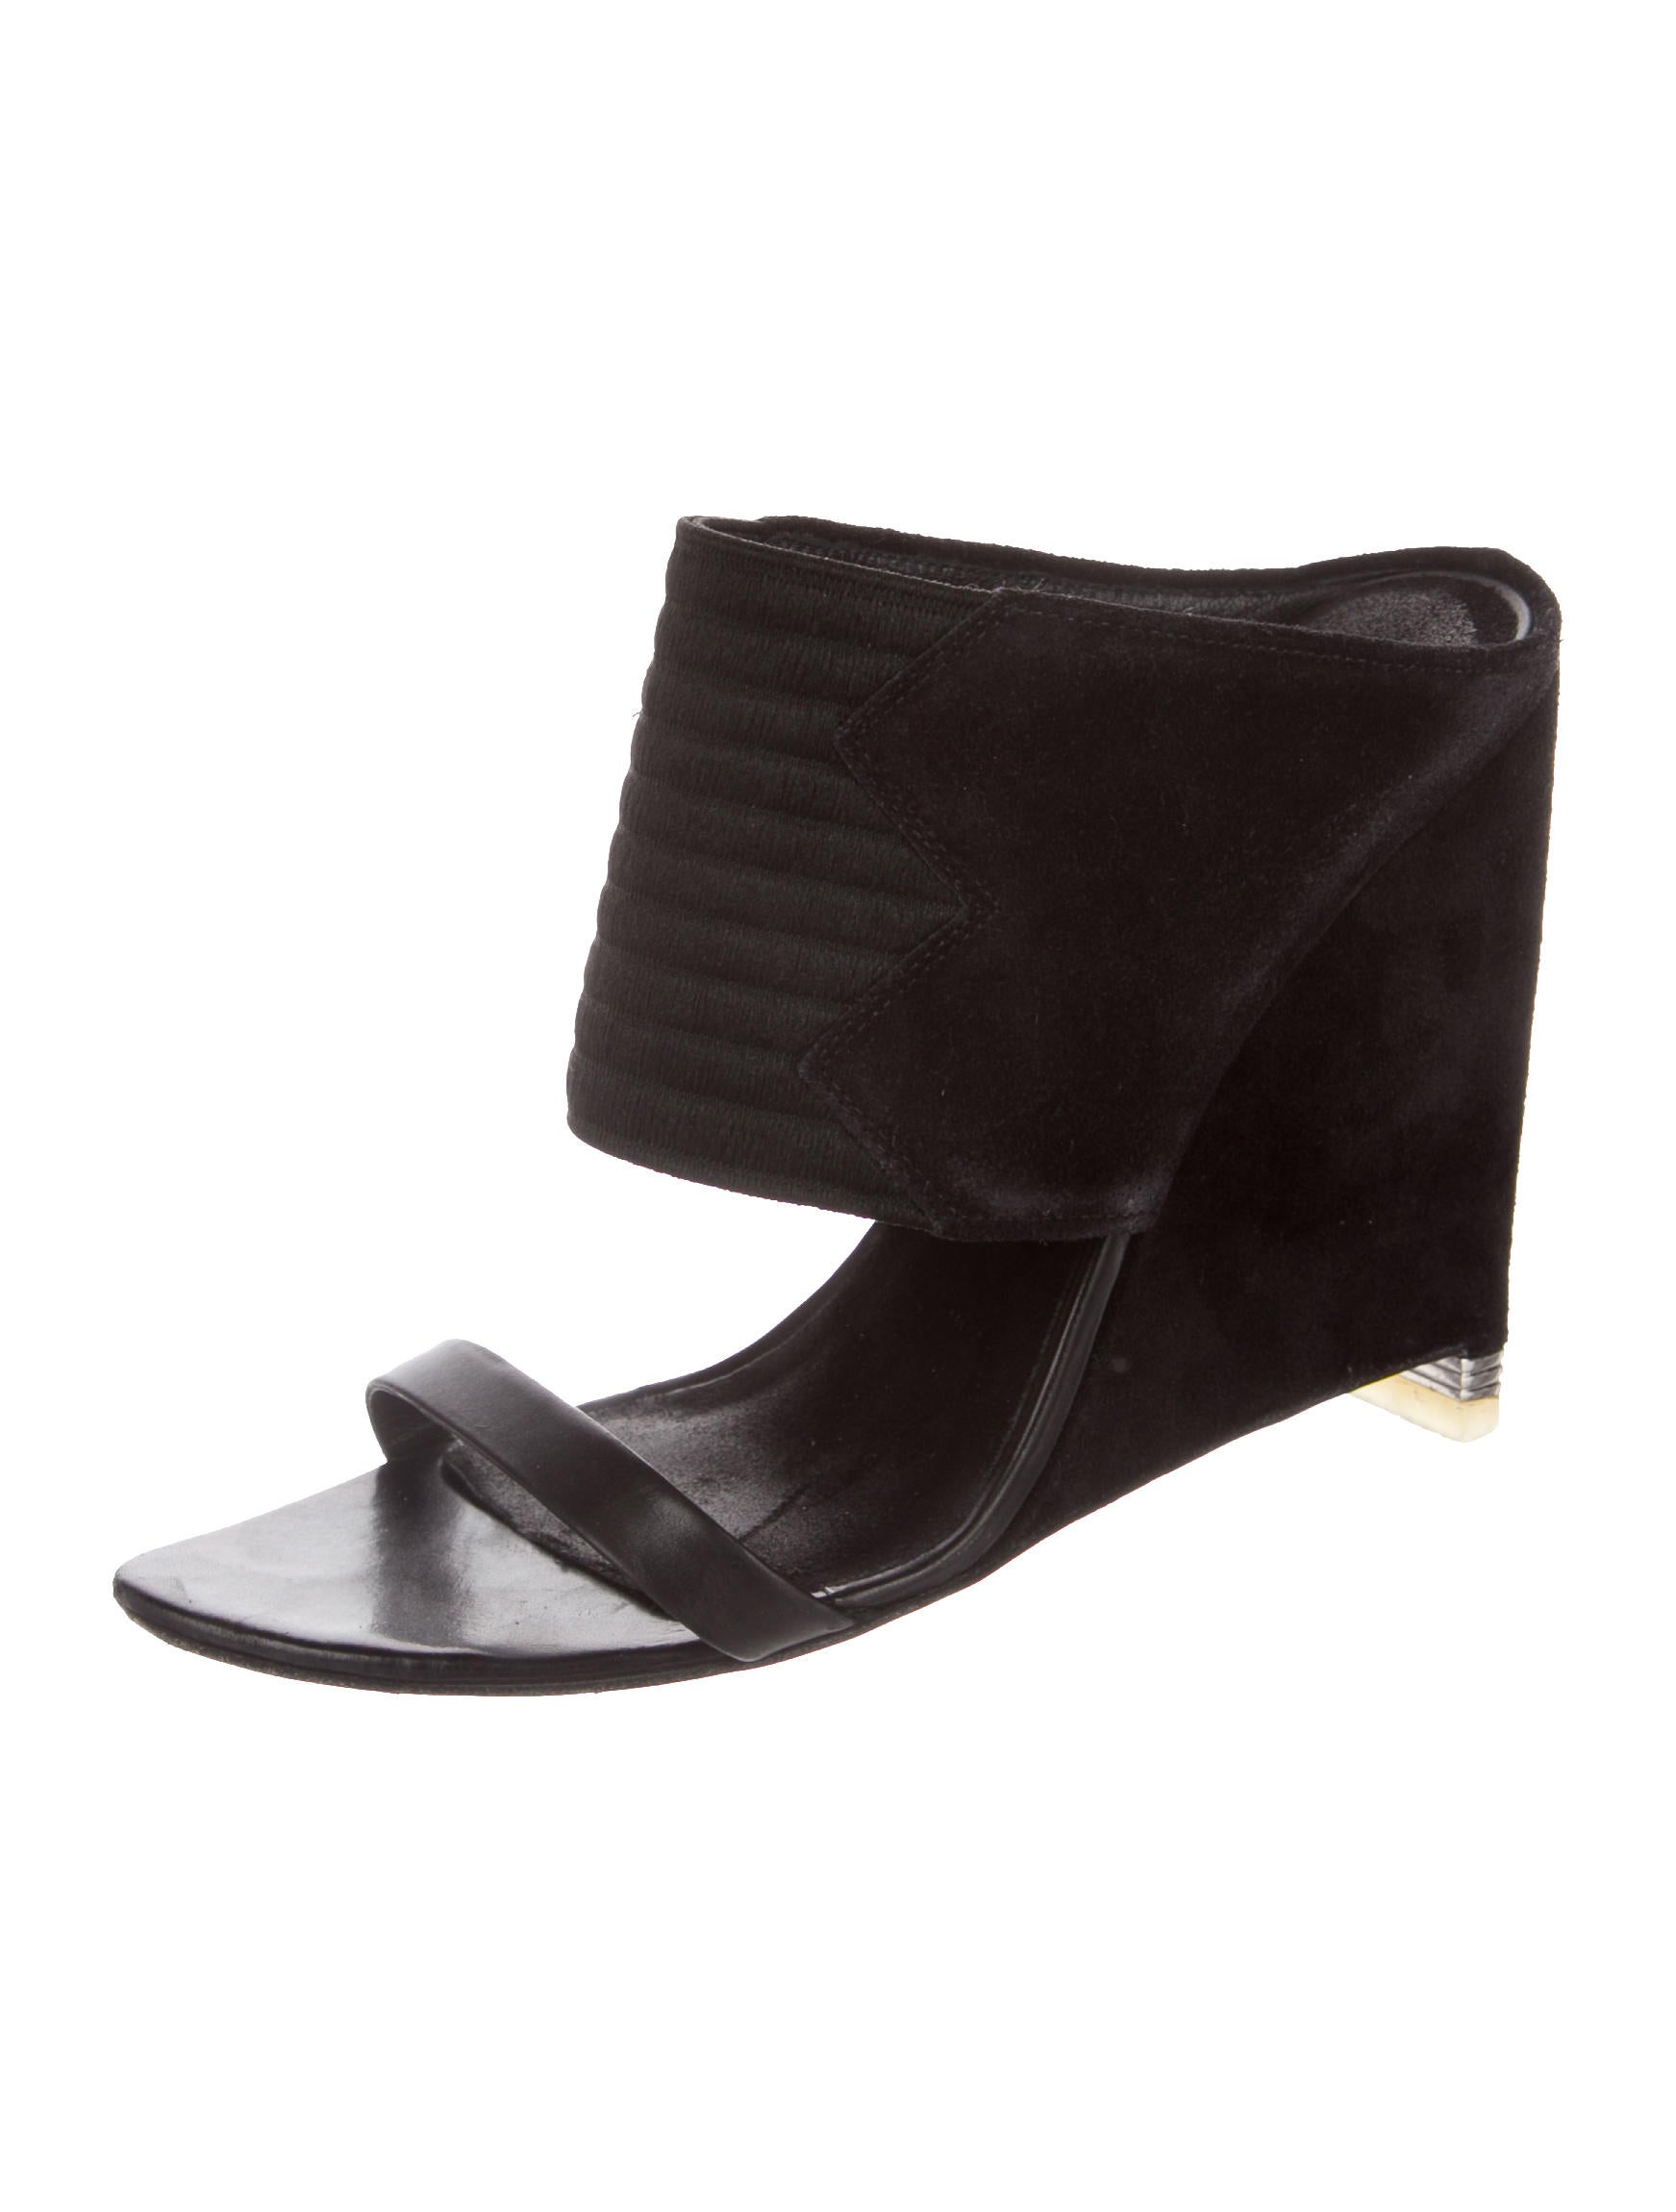 wang suede slide wedges shoes alx41200 the